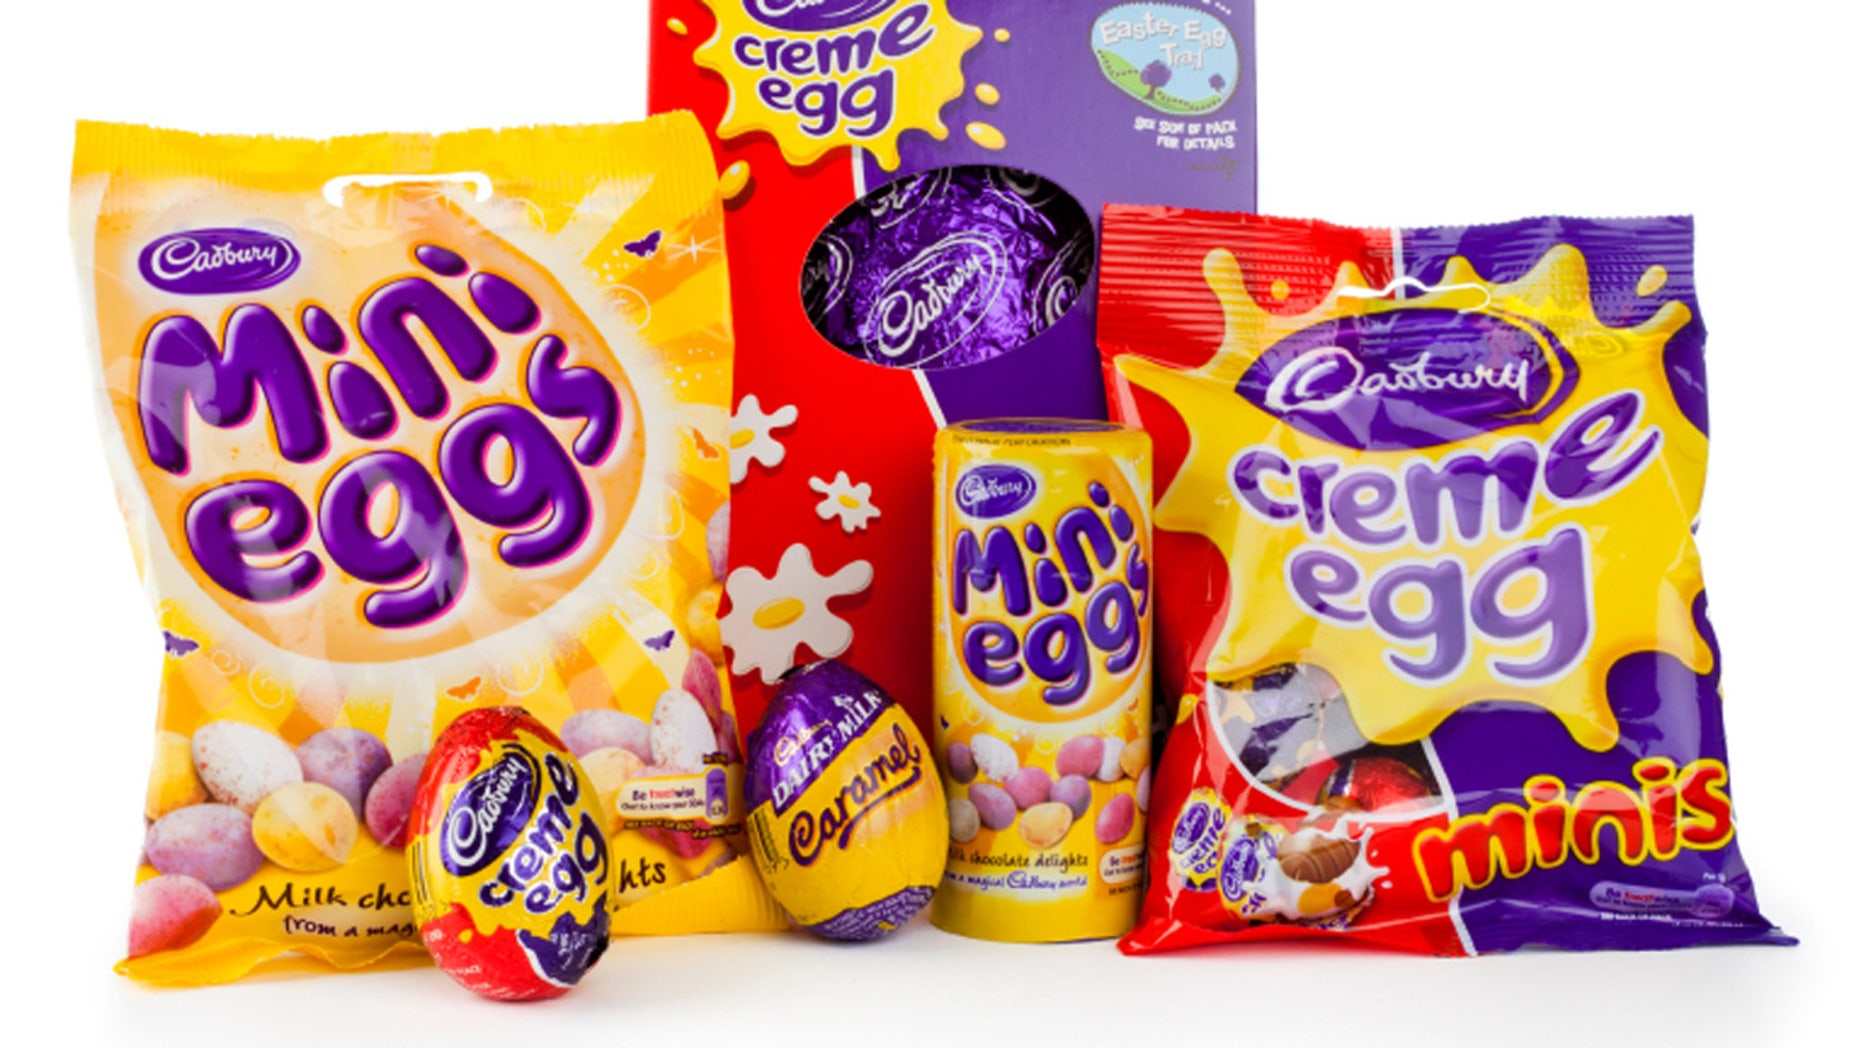 That Cadbury Creme Egg might have more than sugar inside.